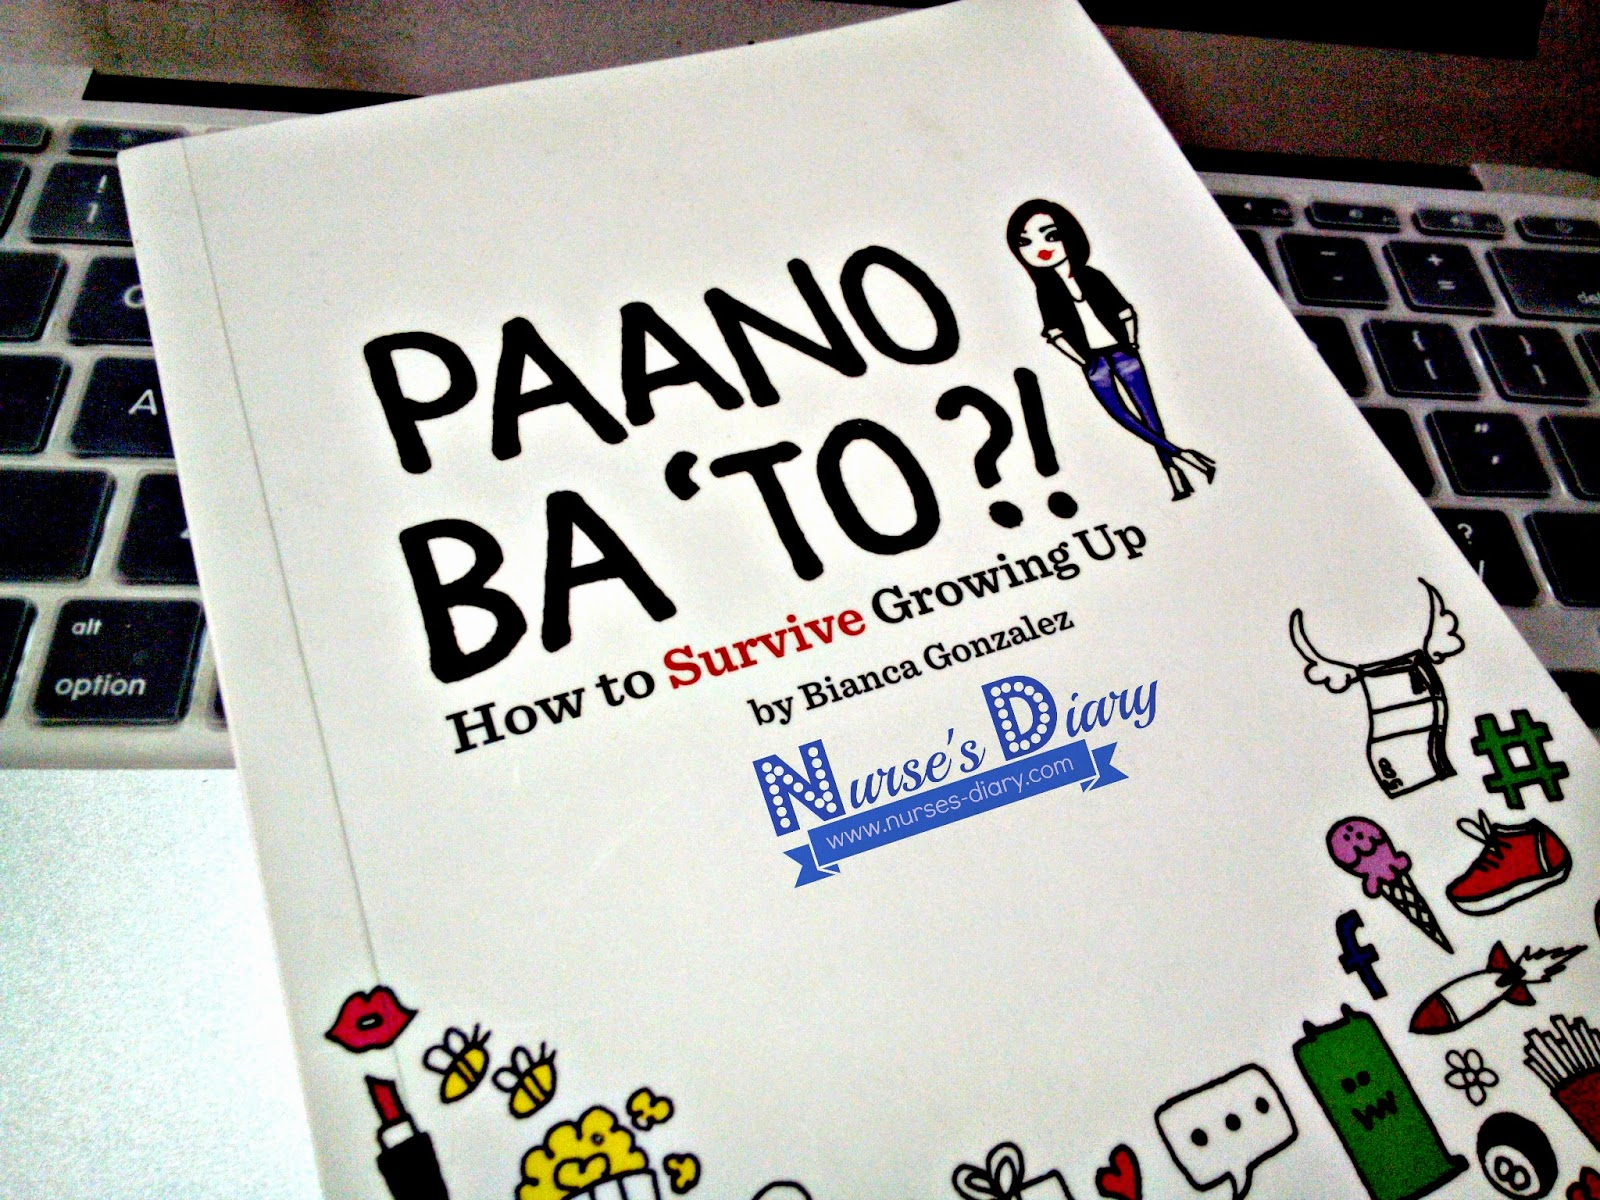 Paano Ba To?! Life Lessons With Bianca Gonzales